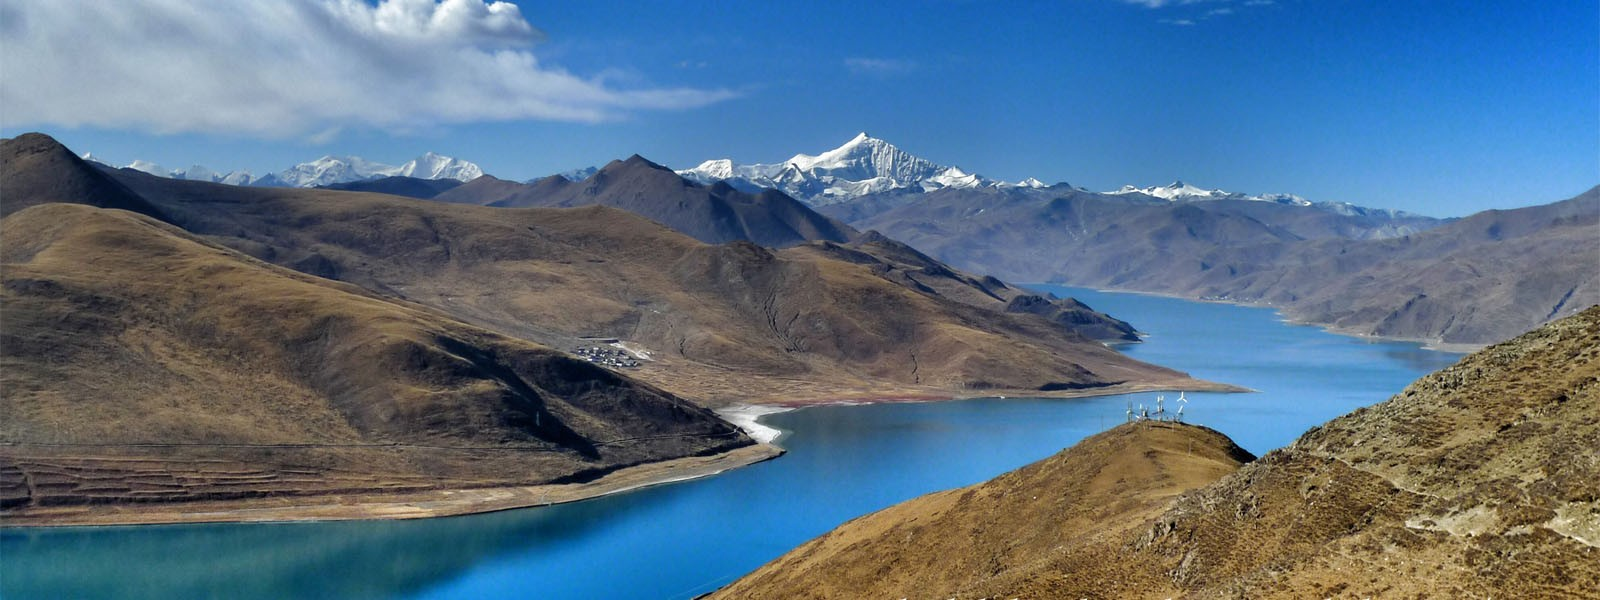 Beijing Lhasa and Kathmandu Tours - Yamdrok Lake